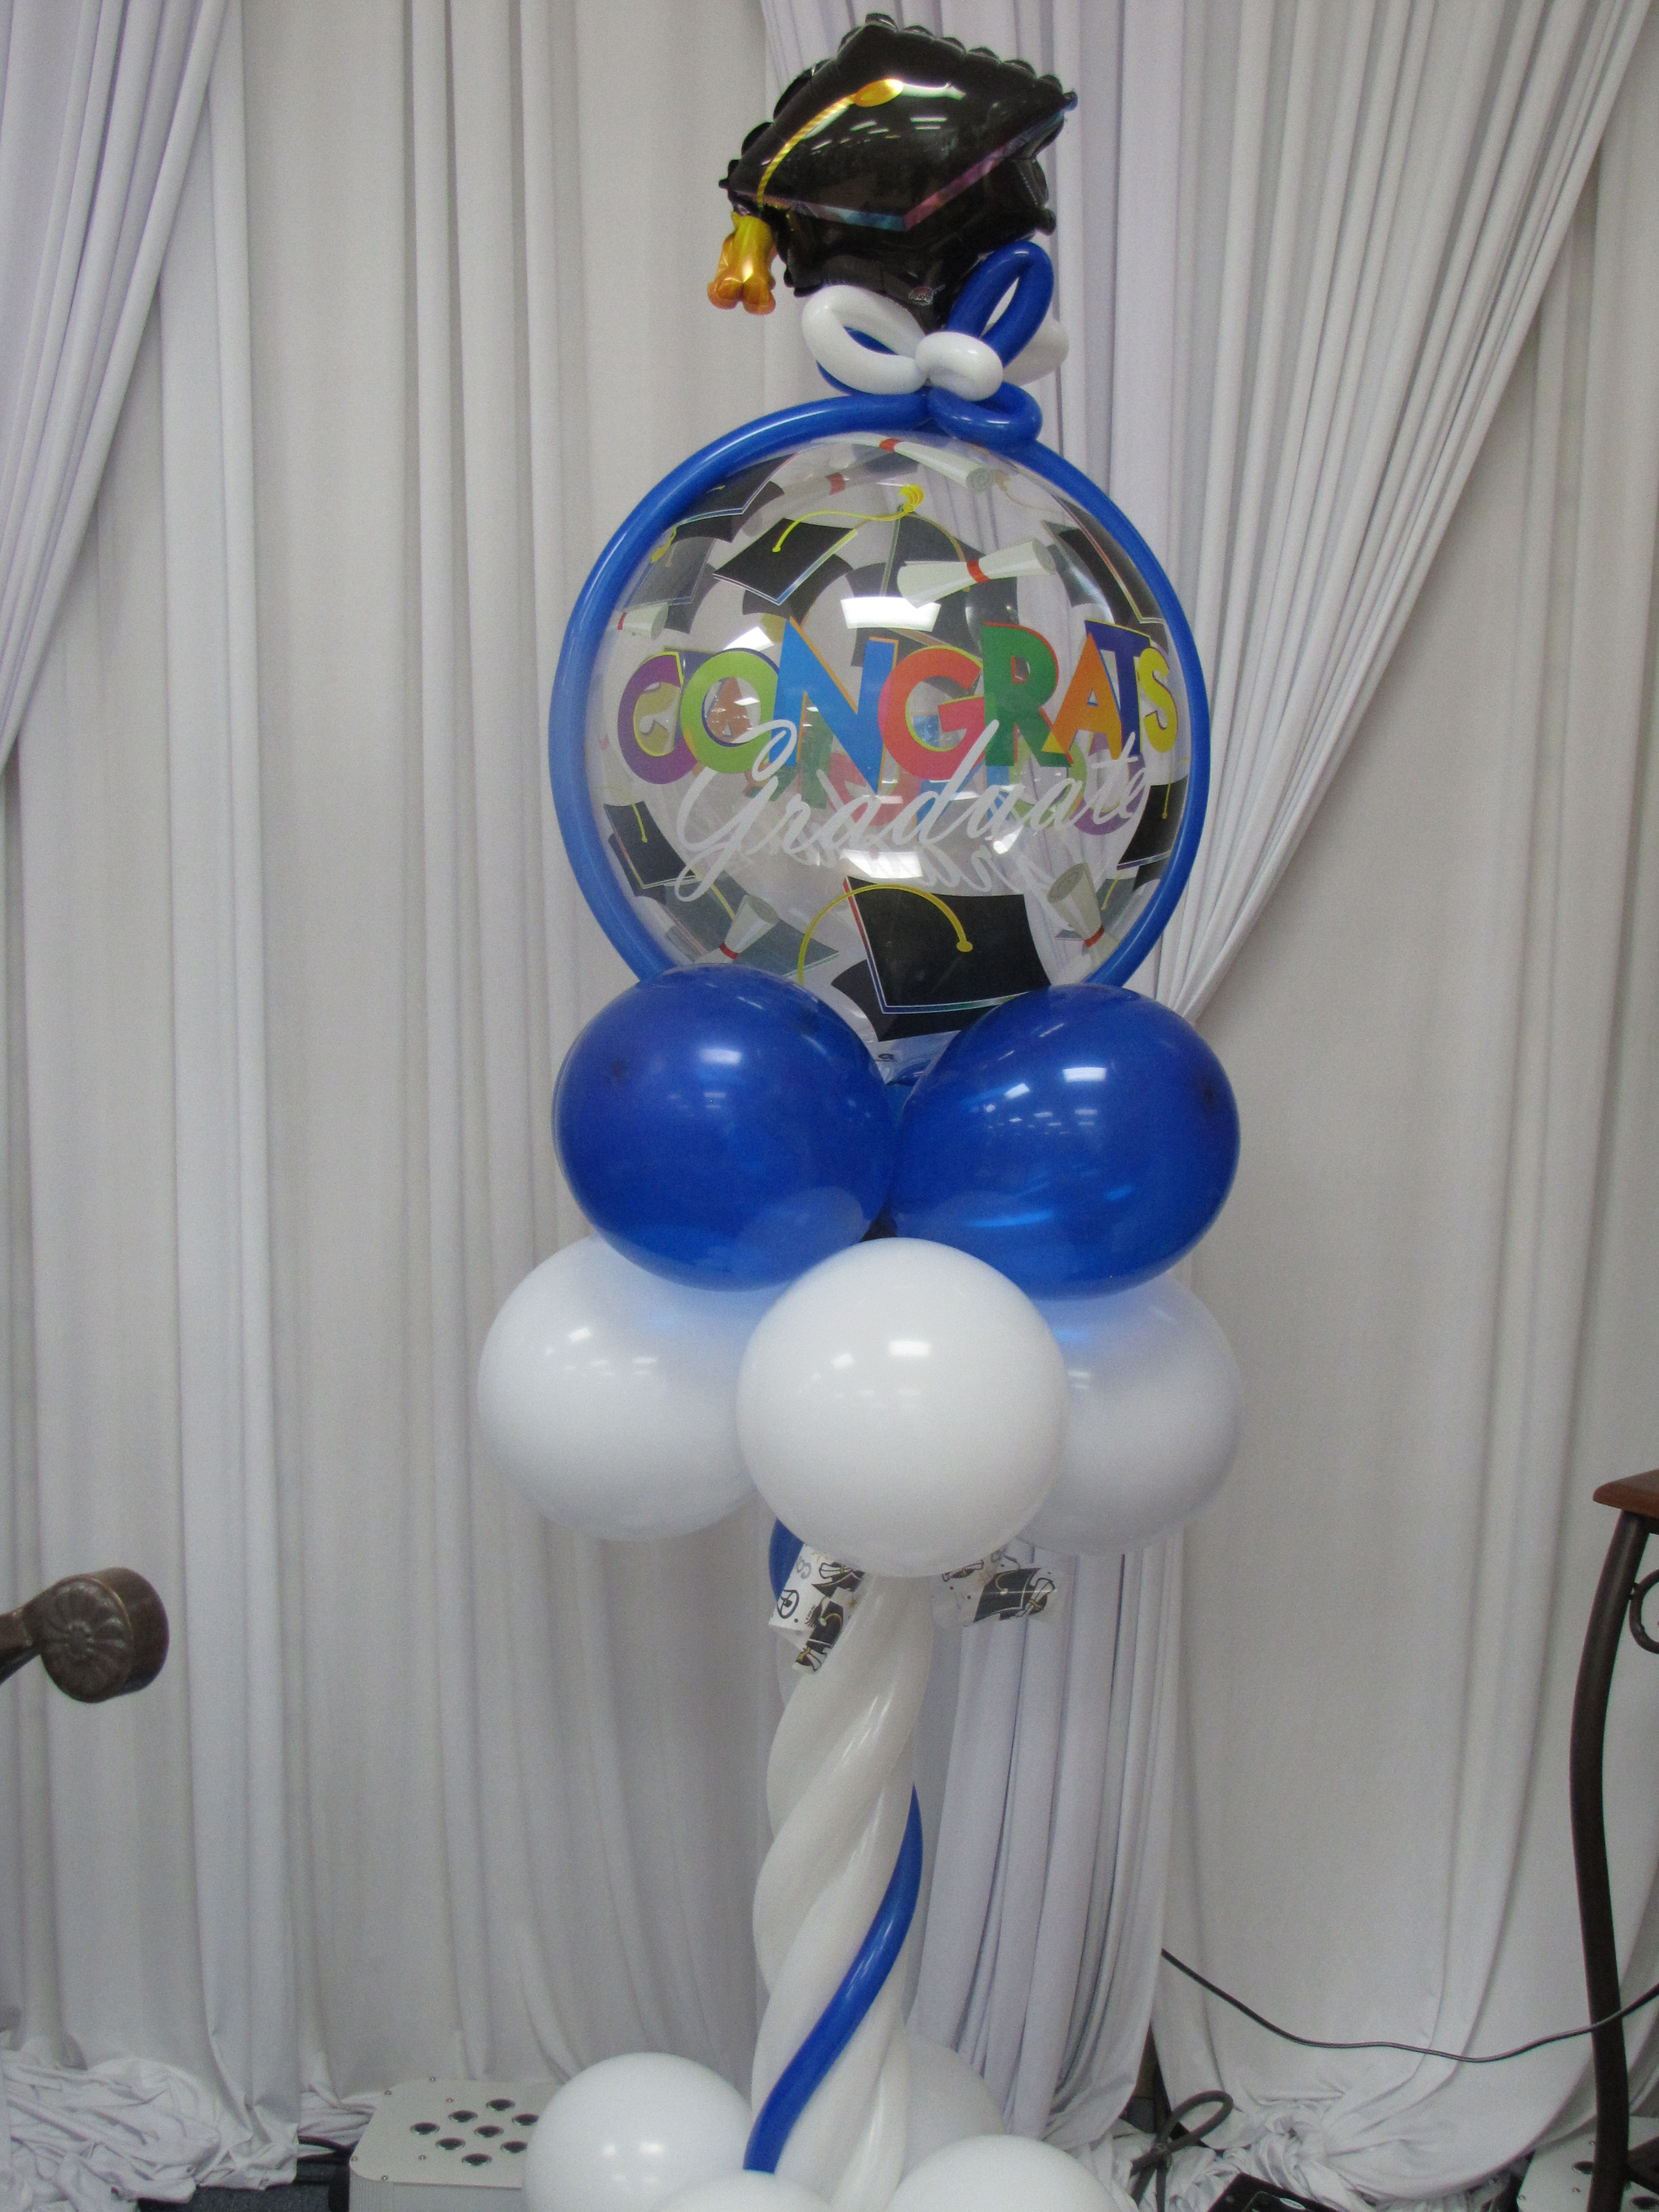 Graduation season balloon decor amytheballoonlady for Balloon decoration graduation